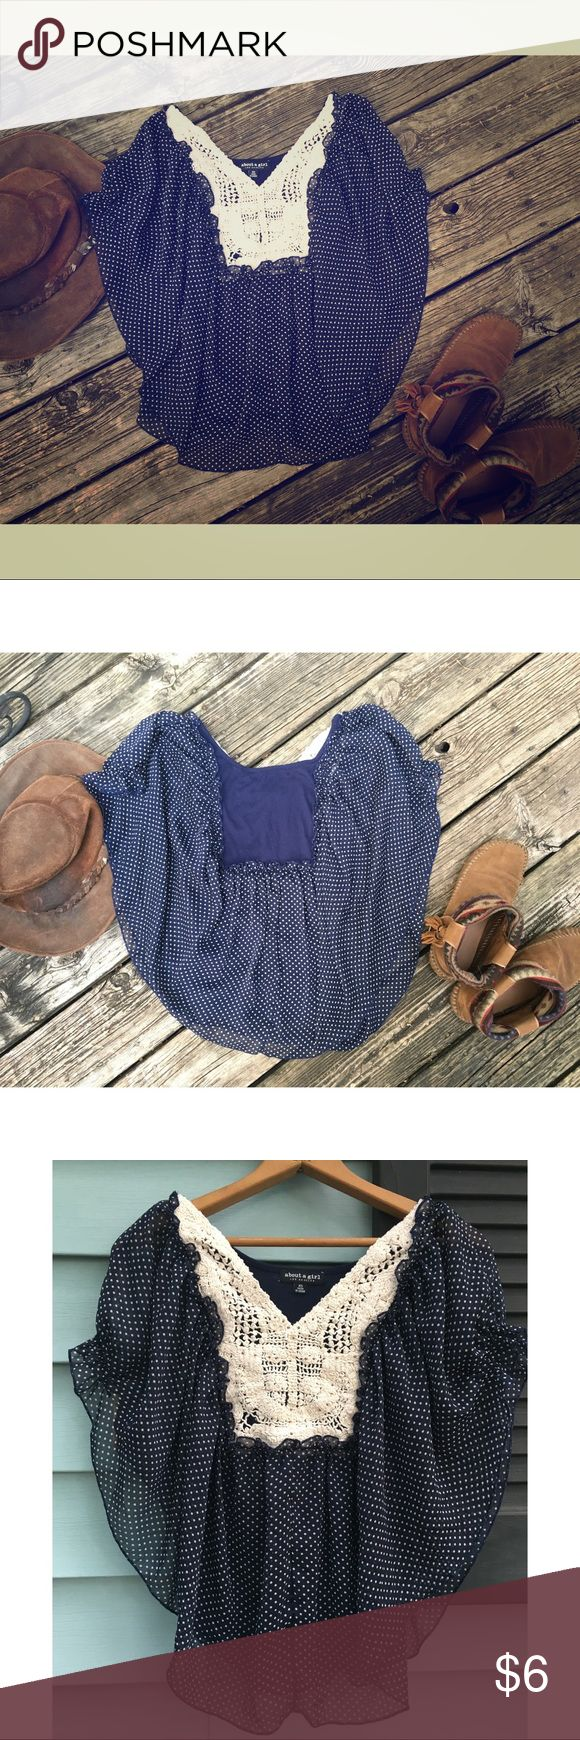 Polka dot batwing style shirt 💙 crotchet lace This top looks really cute on. A dark blue layer underneath the polkadot fabric. Fun to wear. Has a small hole in the back- see last photo👆🏾 About A Girl Tops Blouses